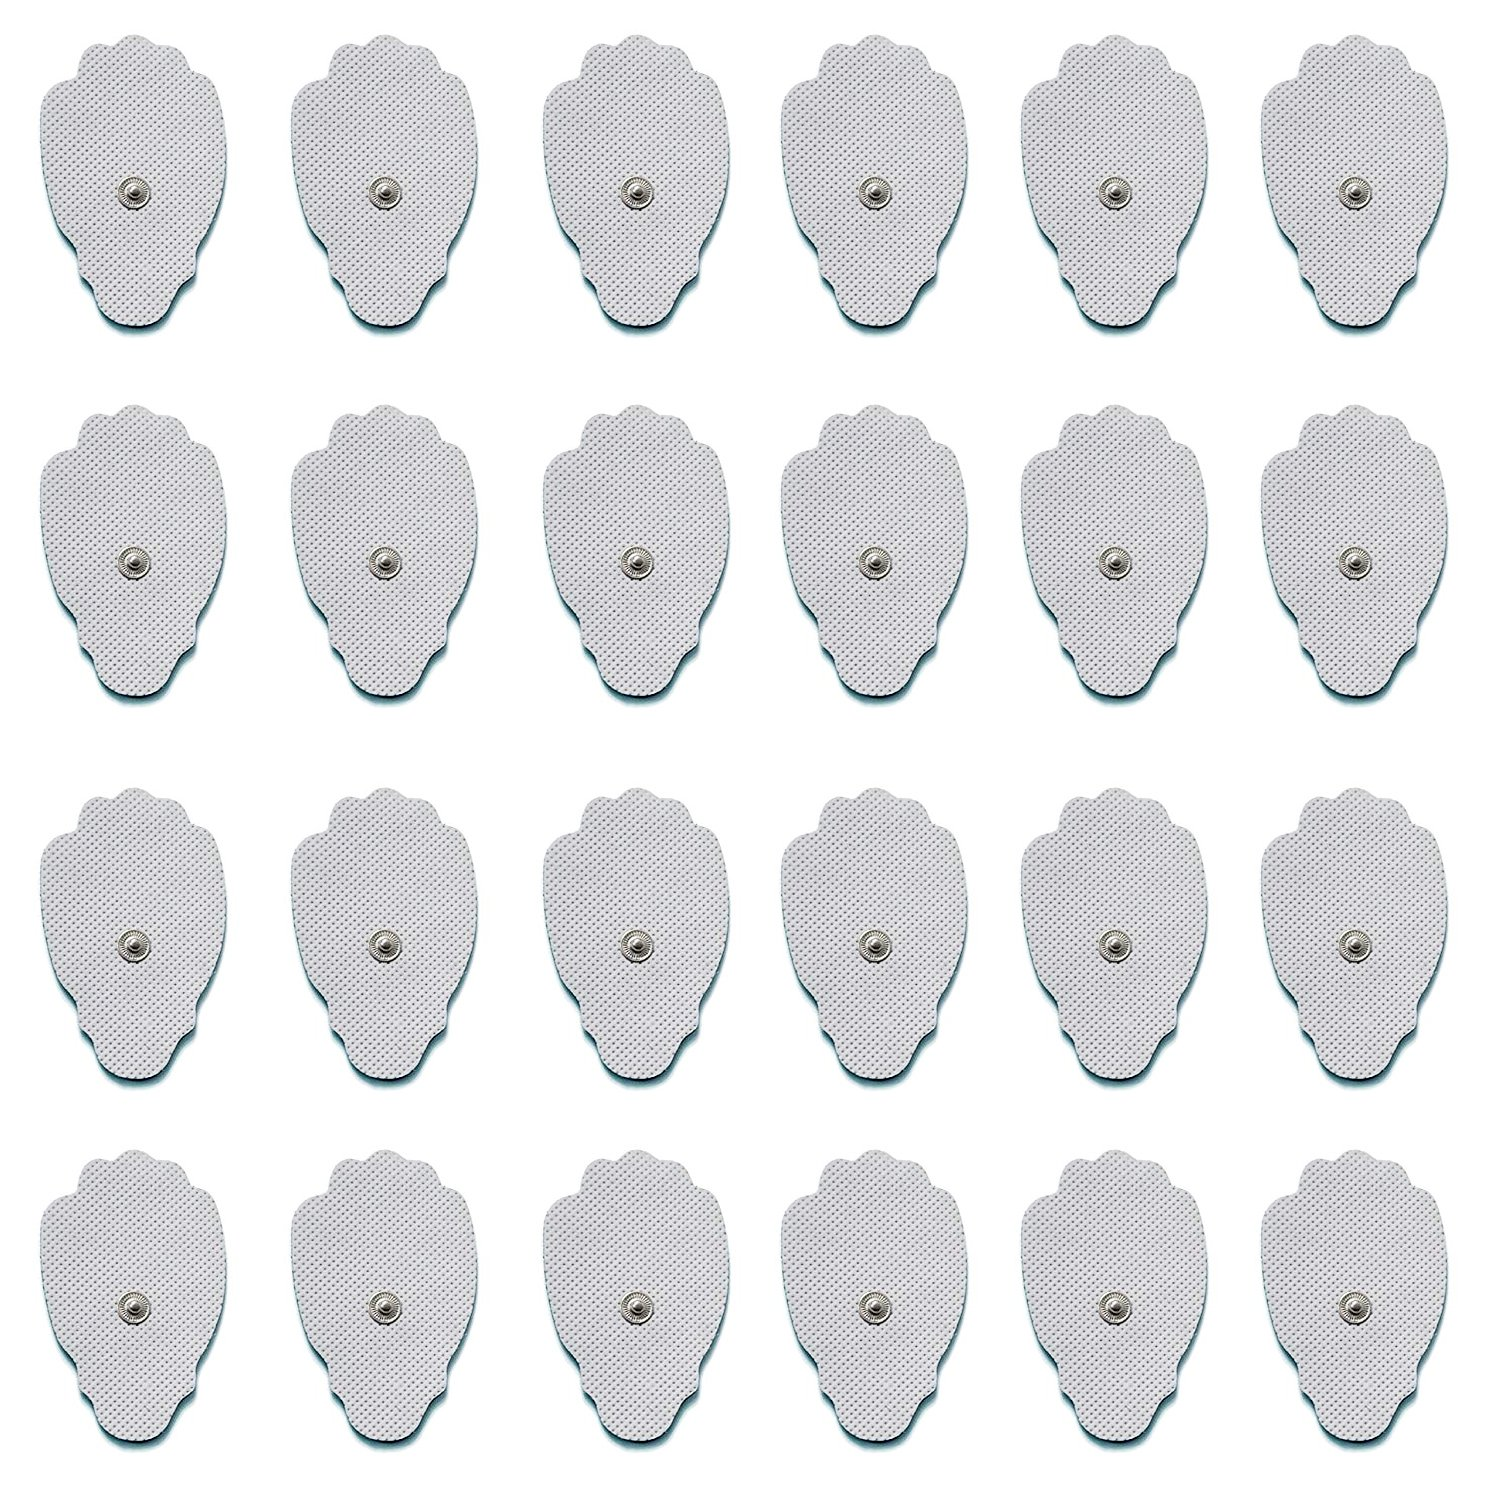 TENS Unit Electrodes, 24-Pack(12 Pairs) Hand Shape Electrode Pads Large Premium for TENS Therapy - Universally Compatible with Most TENS Machine Models - Reusable up to 30 Times -FDA Cleared